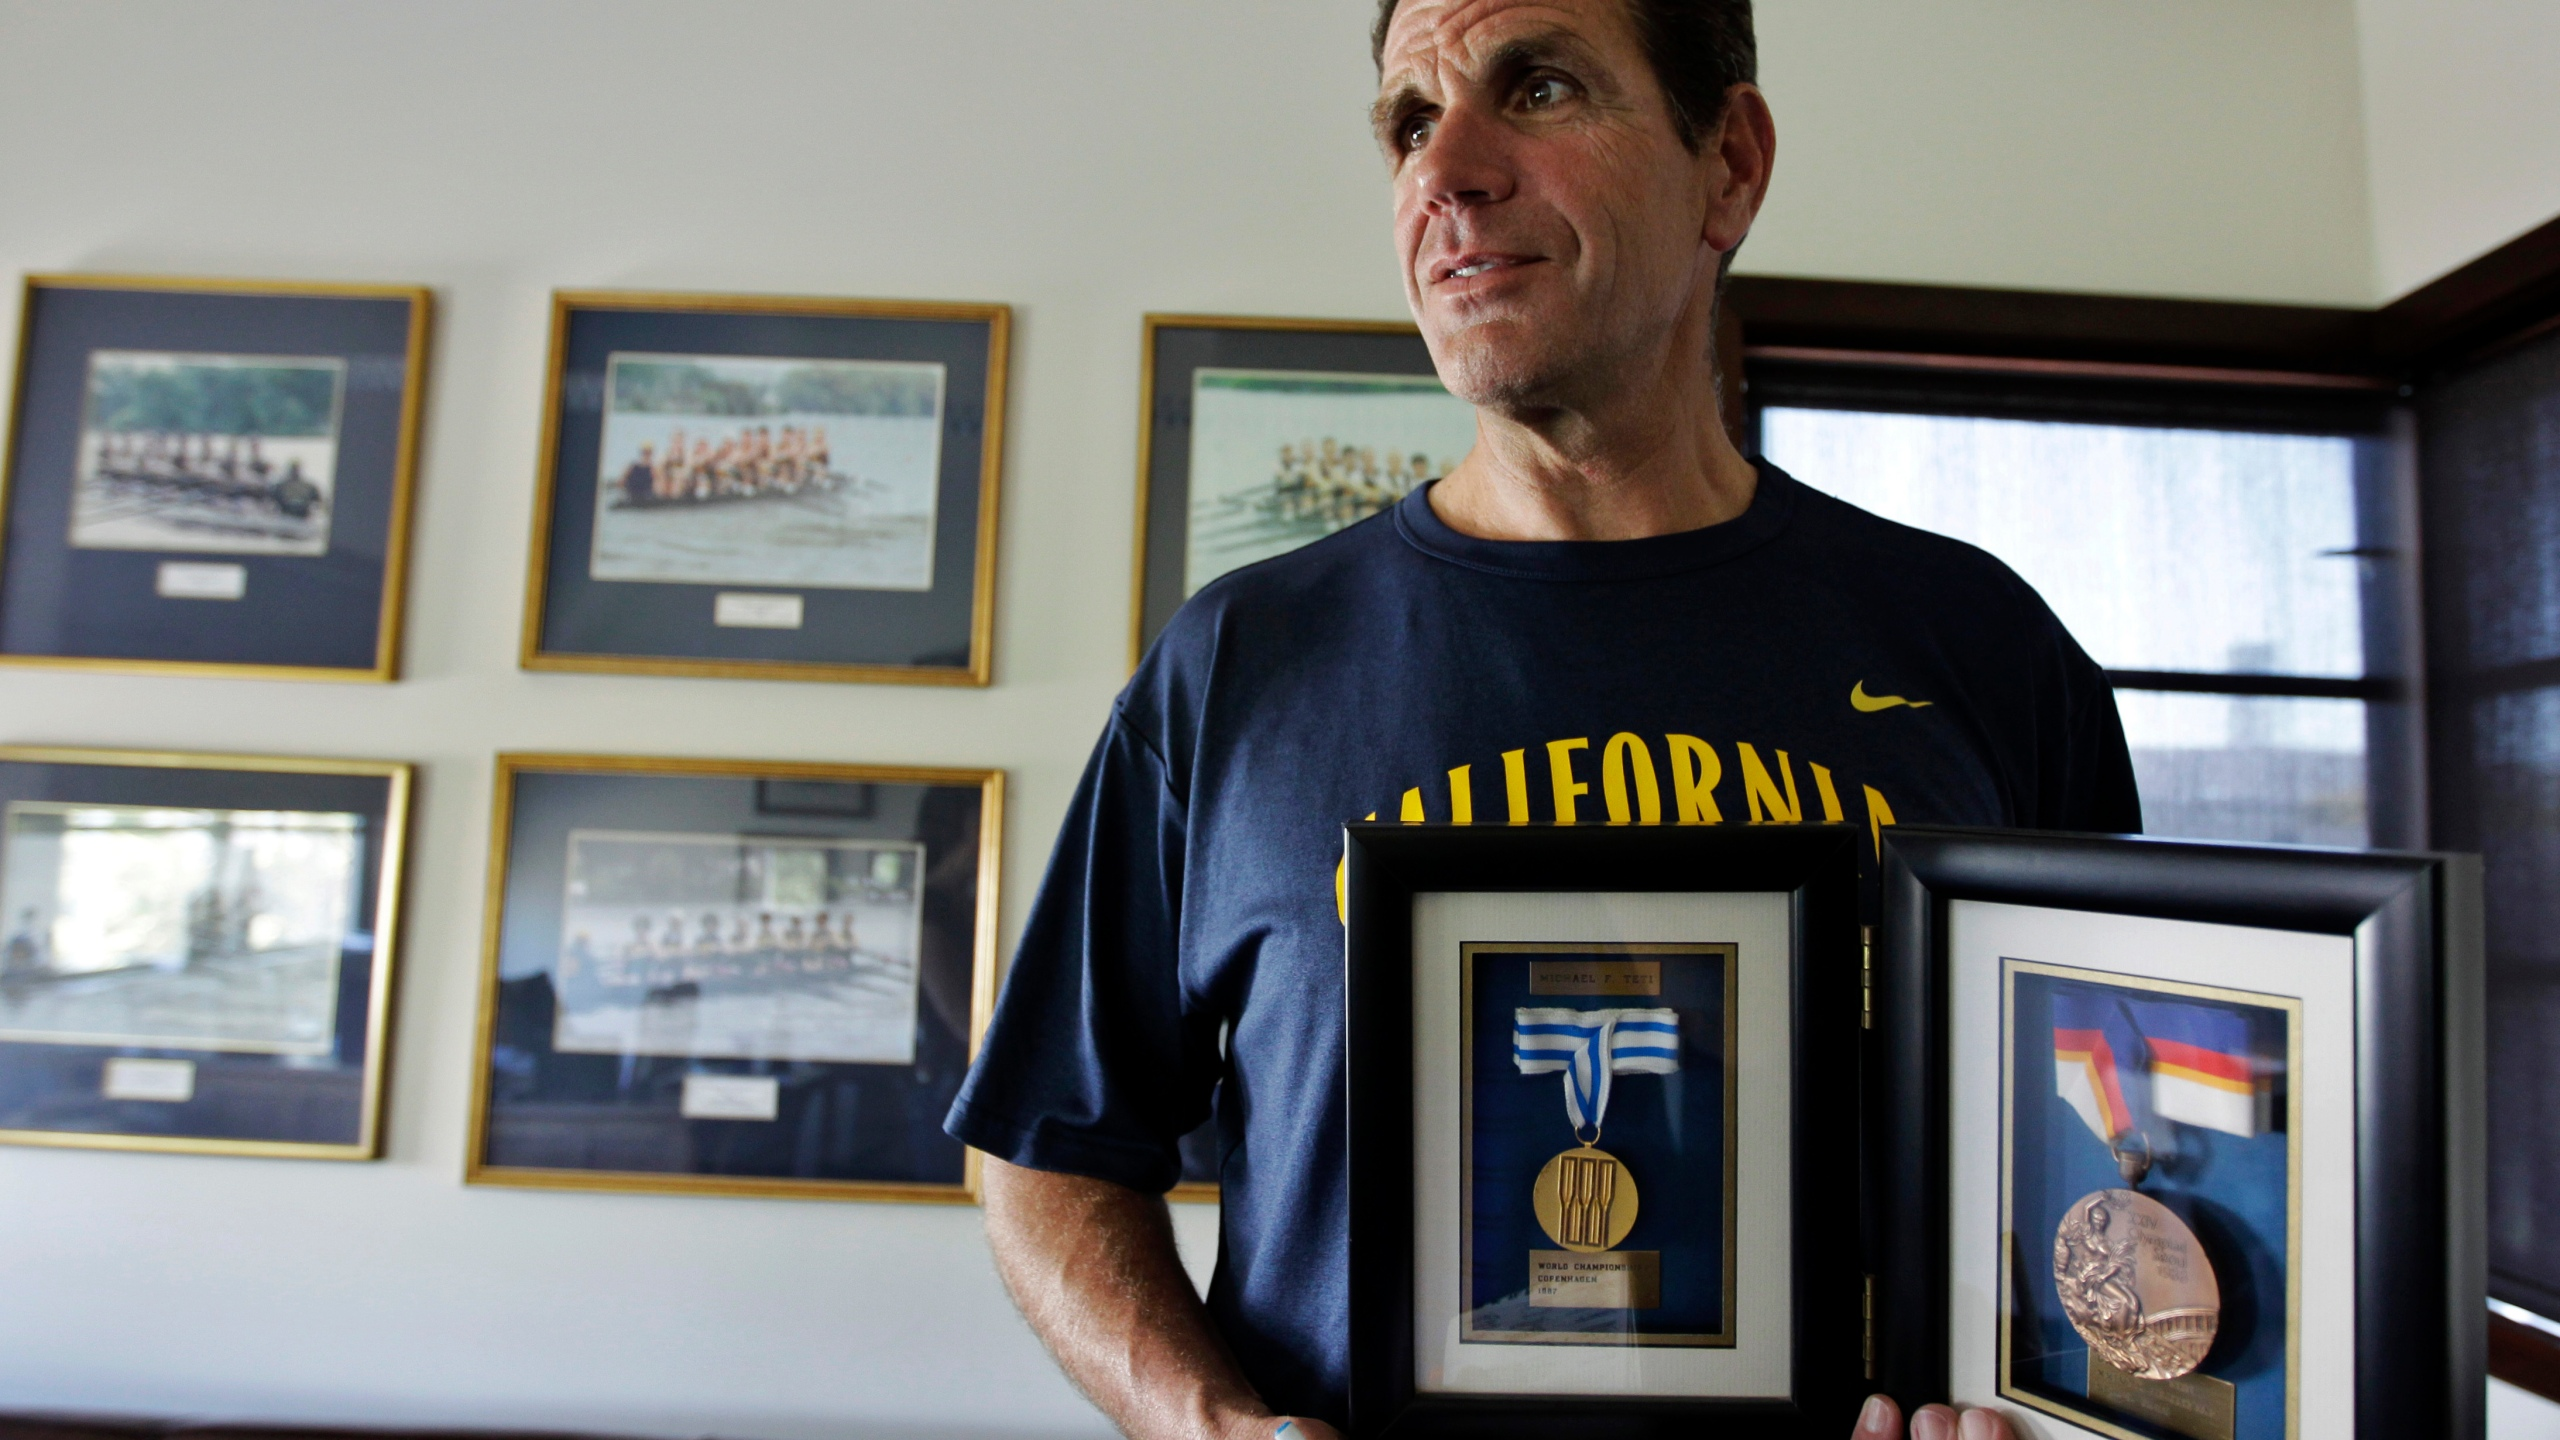 In this May 7, 2012, file photo, coach Mike Teti displays the bronze medal from the Seoul Olympics and the gold medal from the 1987 World Championship in Copenhagen in his office in Oakland, Calif. (AP Photo/Paul Sakuma, File)